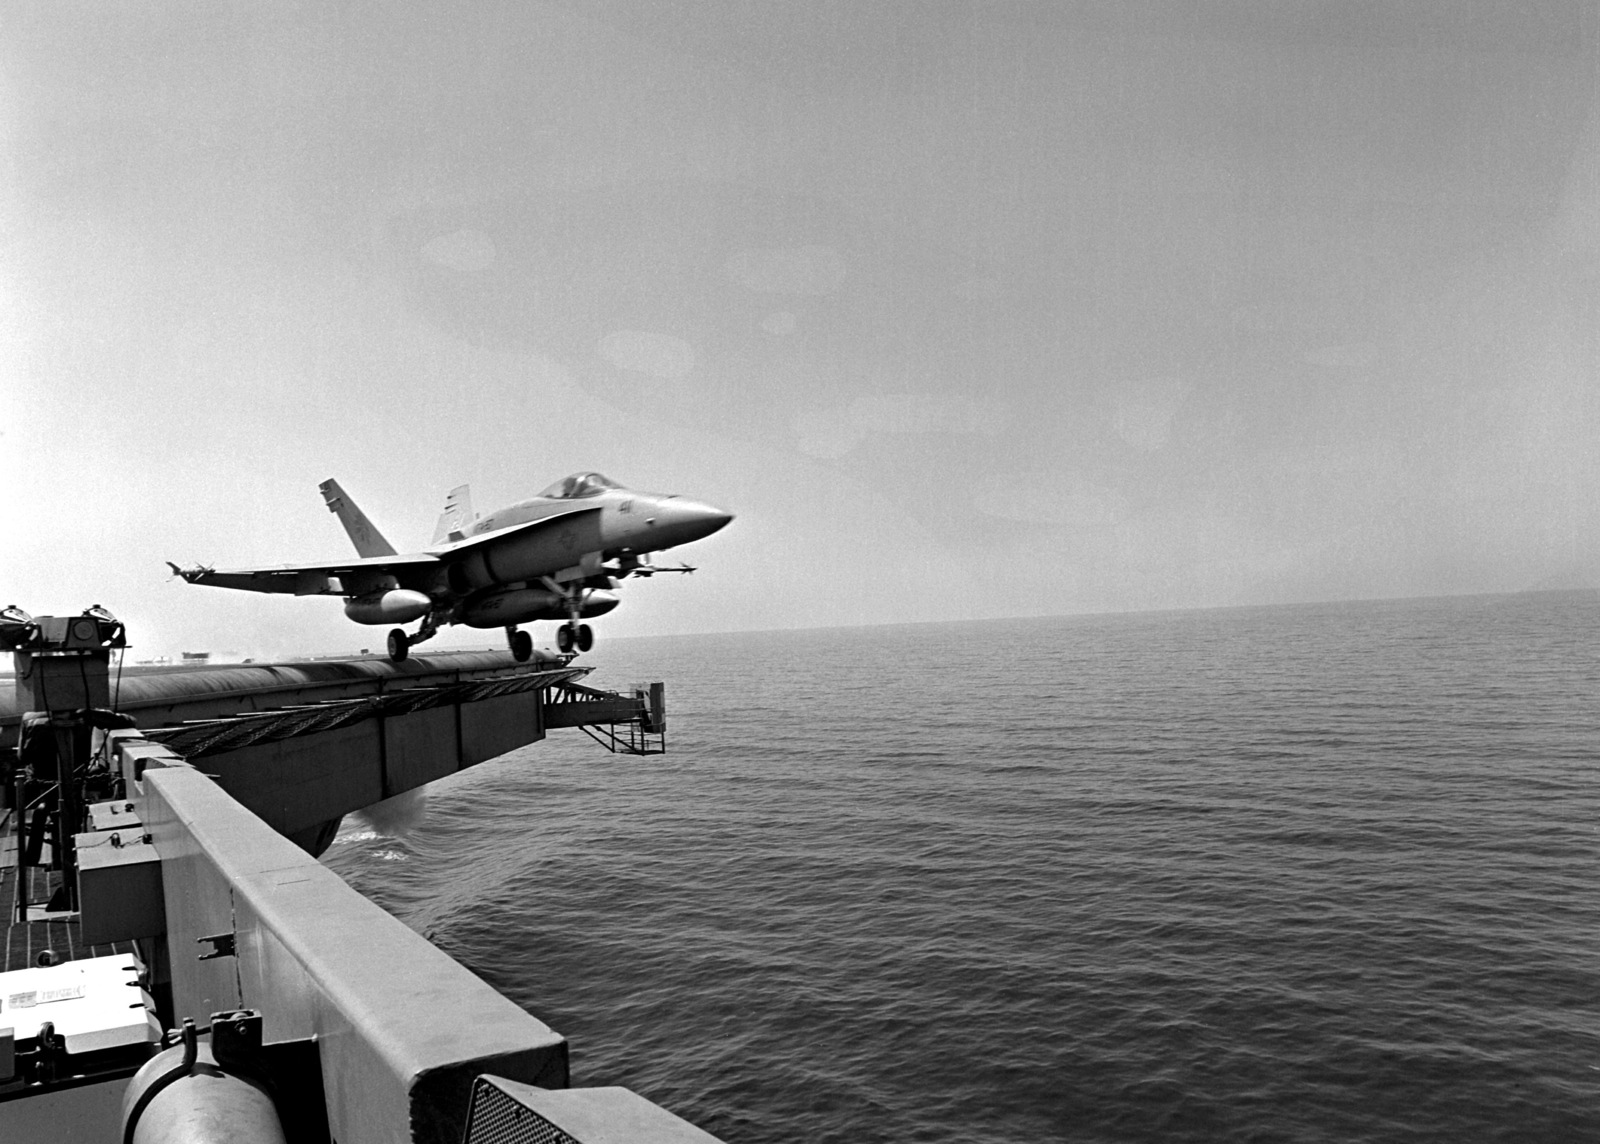 A Strike Fighter Squadron 87 (VFA-87) F/A-18A Hornet aircraft takes to the air as it is launched from the flight deck of the nuclear-powered aircraft carrier USS THEODORE ROOSEVELT (CVN-71). The ROOSEVELT is on station in the eastern Mediterranean in support of Operation Provide Comfort, a multinational effort to aid Kurdish refugees in southern Turkey and northern Iraq